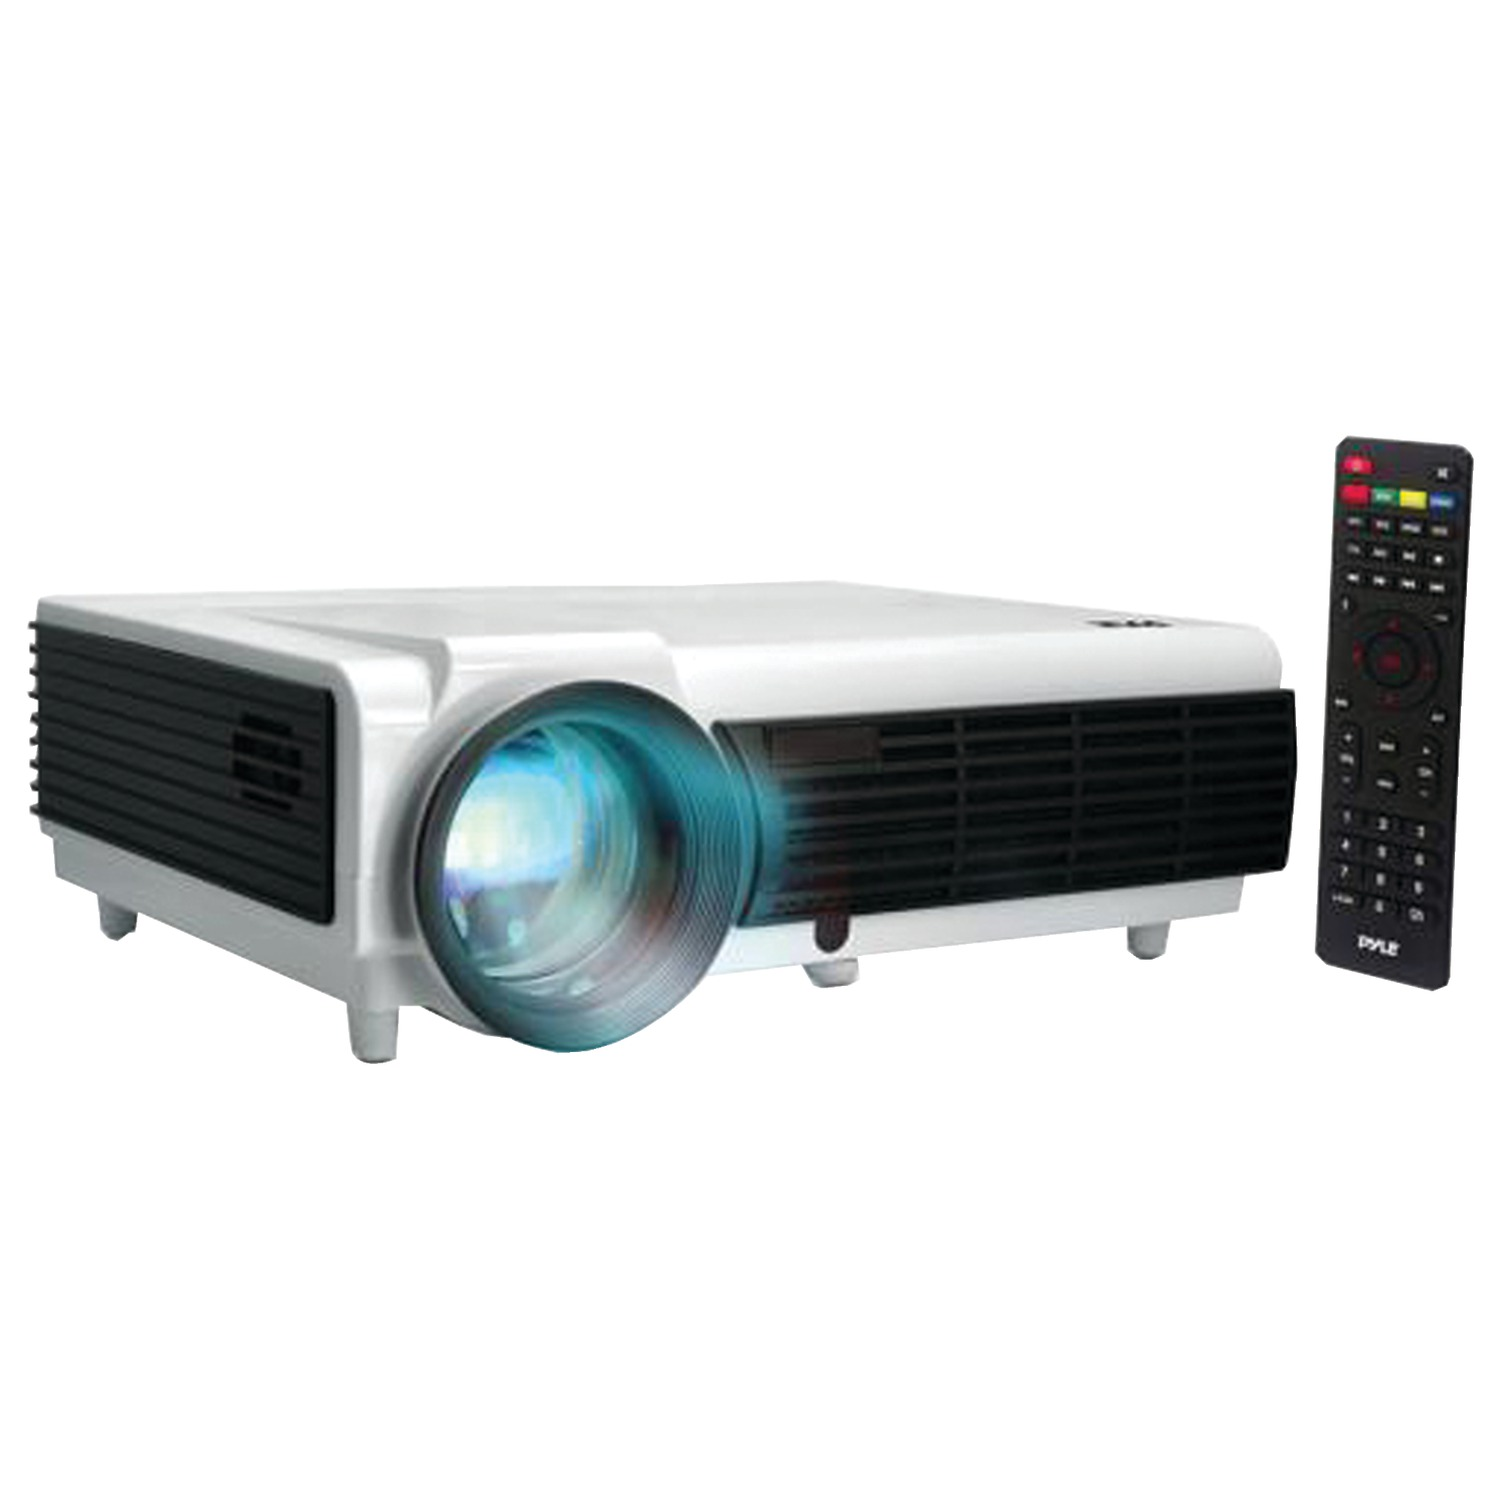 Pyle home prjd903 full hd 1080p digital multimedia projector for Hd projector reviews